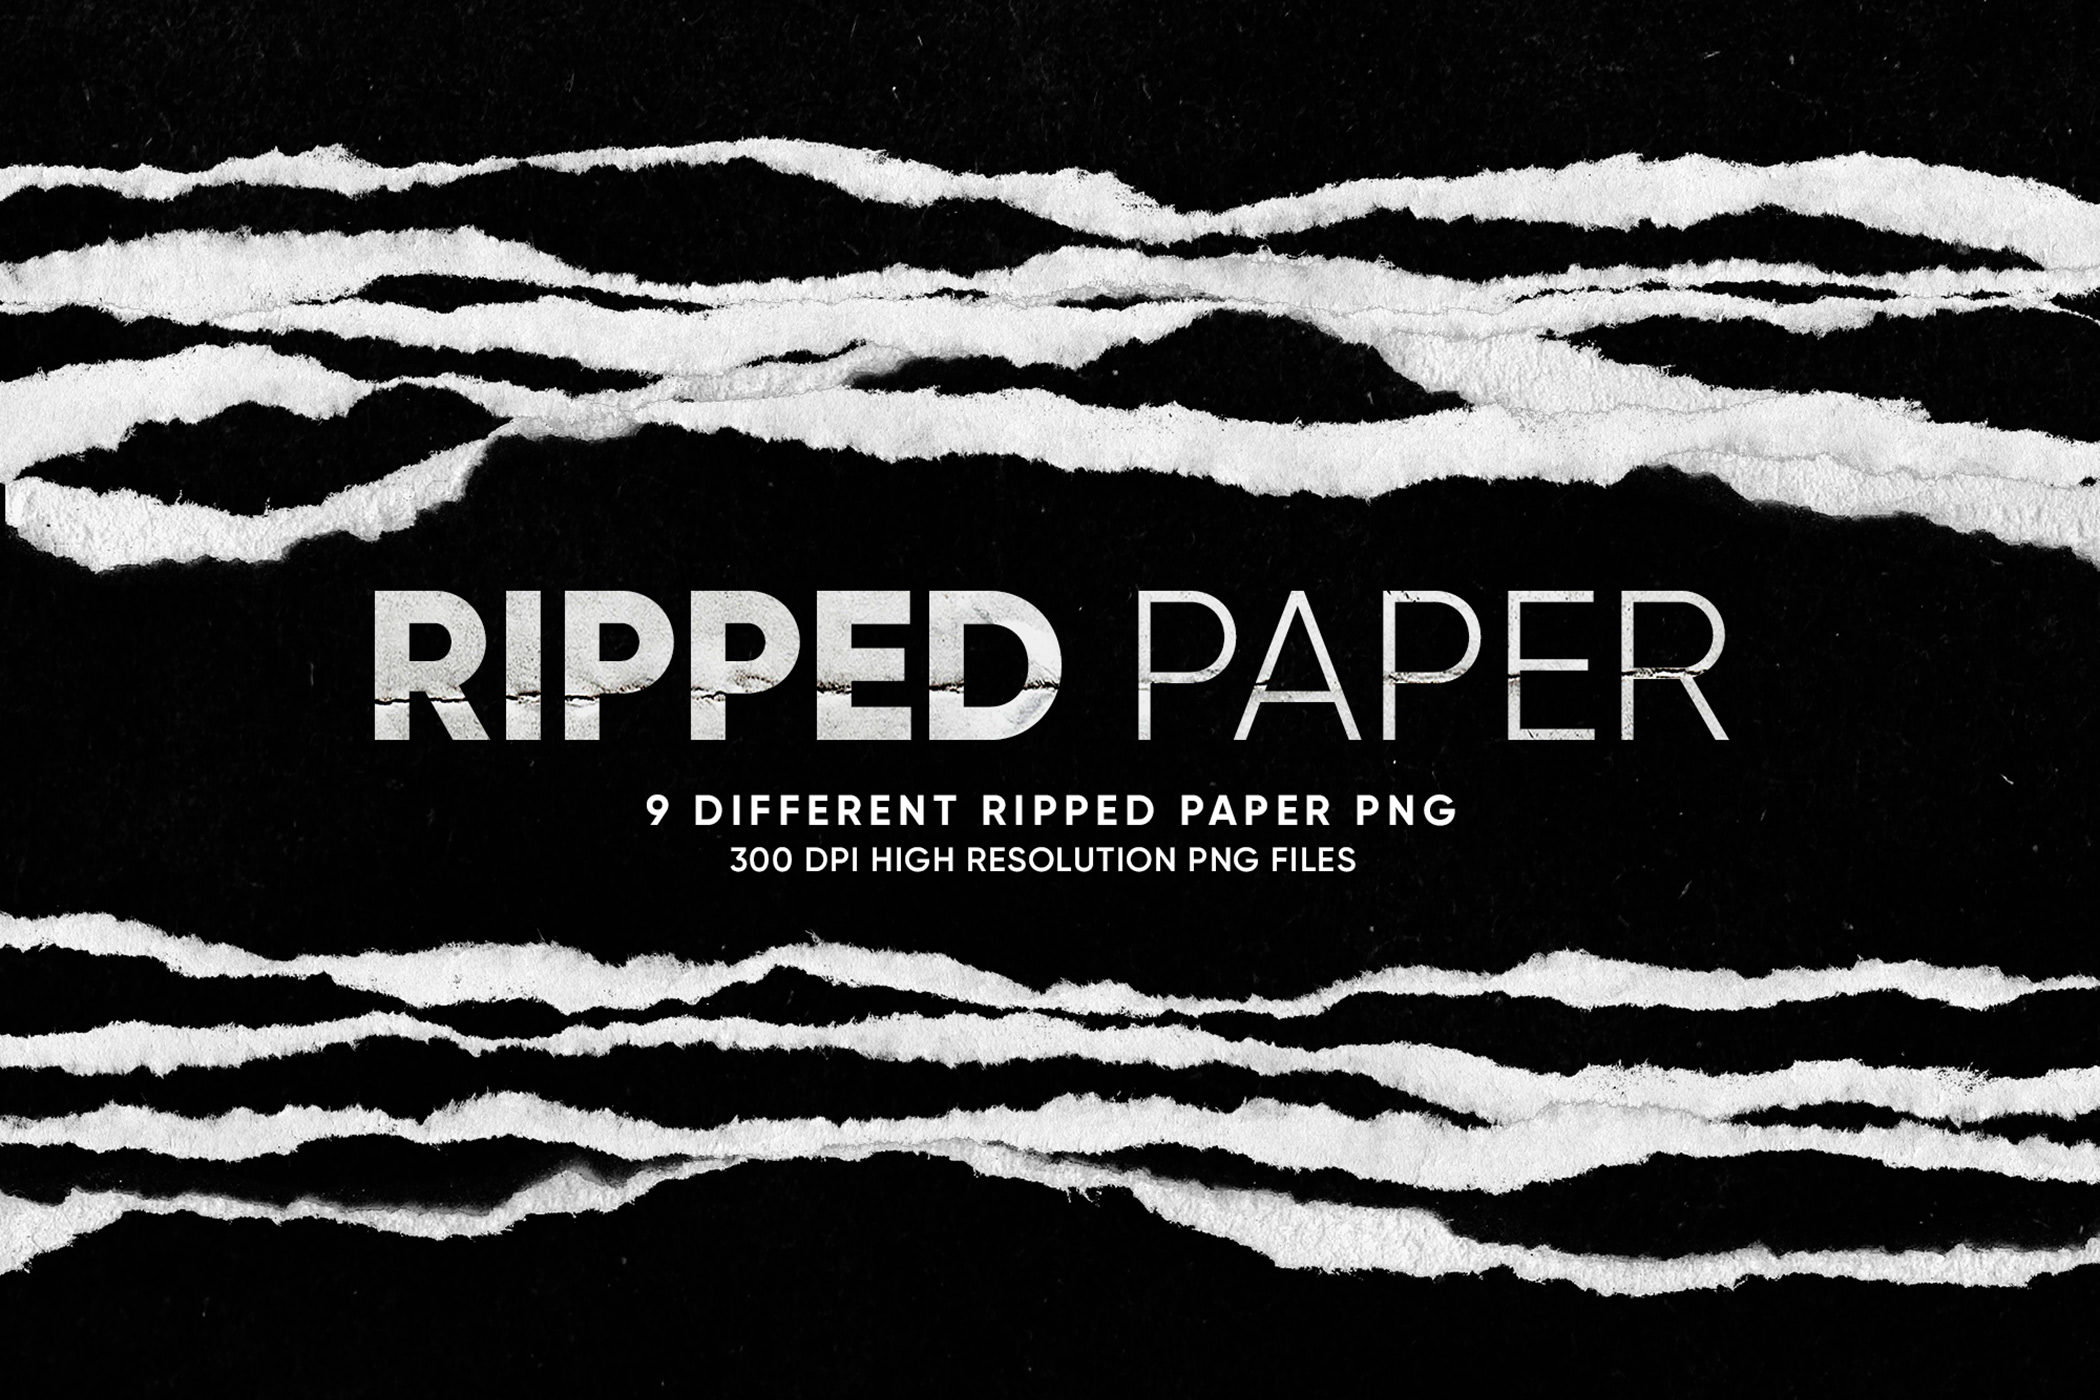 https://nusupply.co/wp-content/uploads/2019/11/ripped-paper-pack-2100x1400.jpg